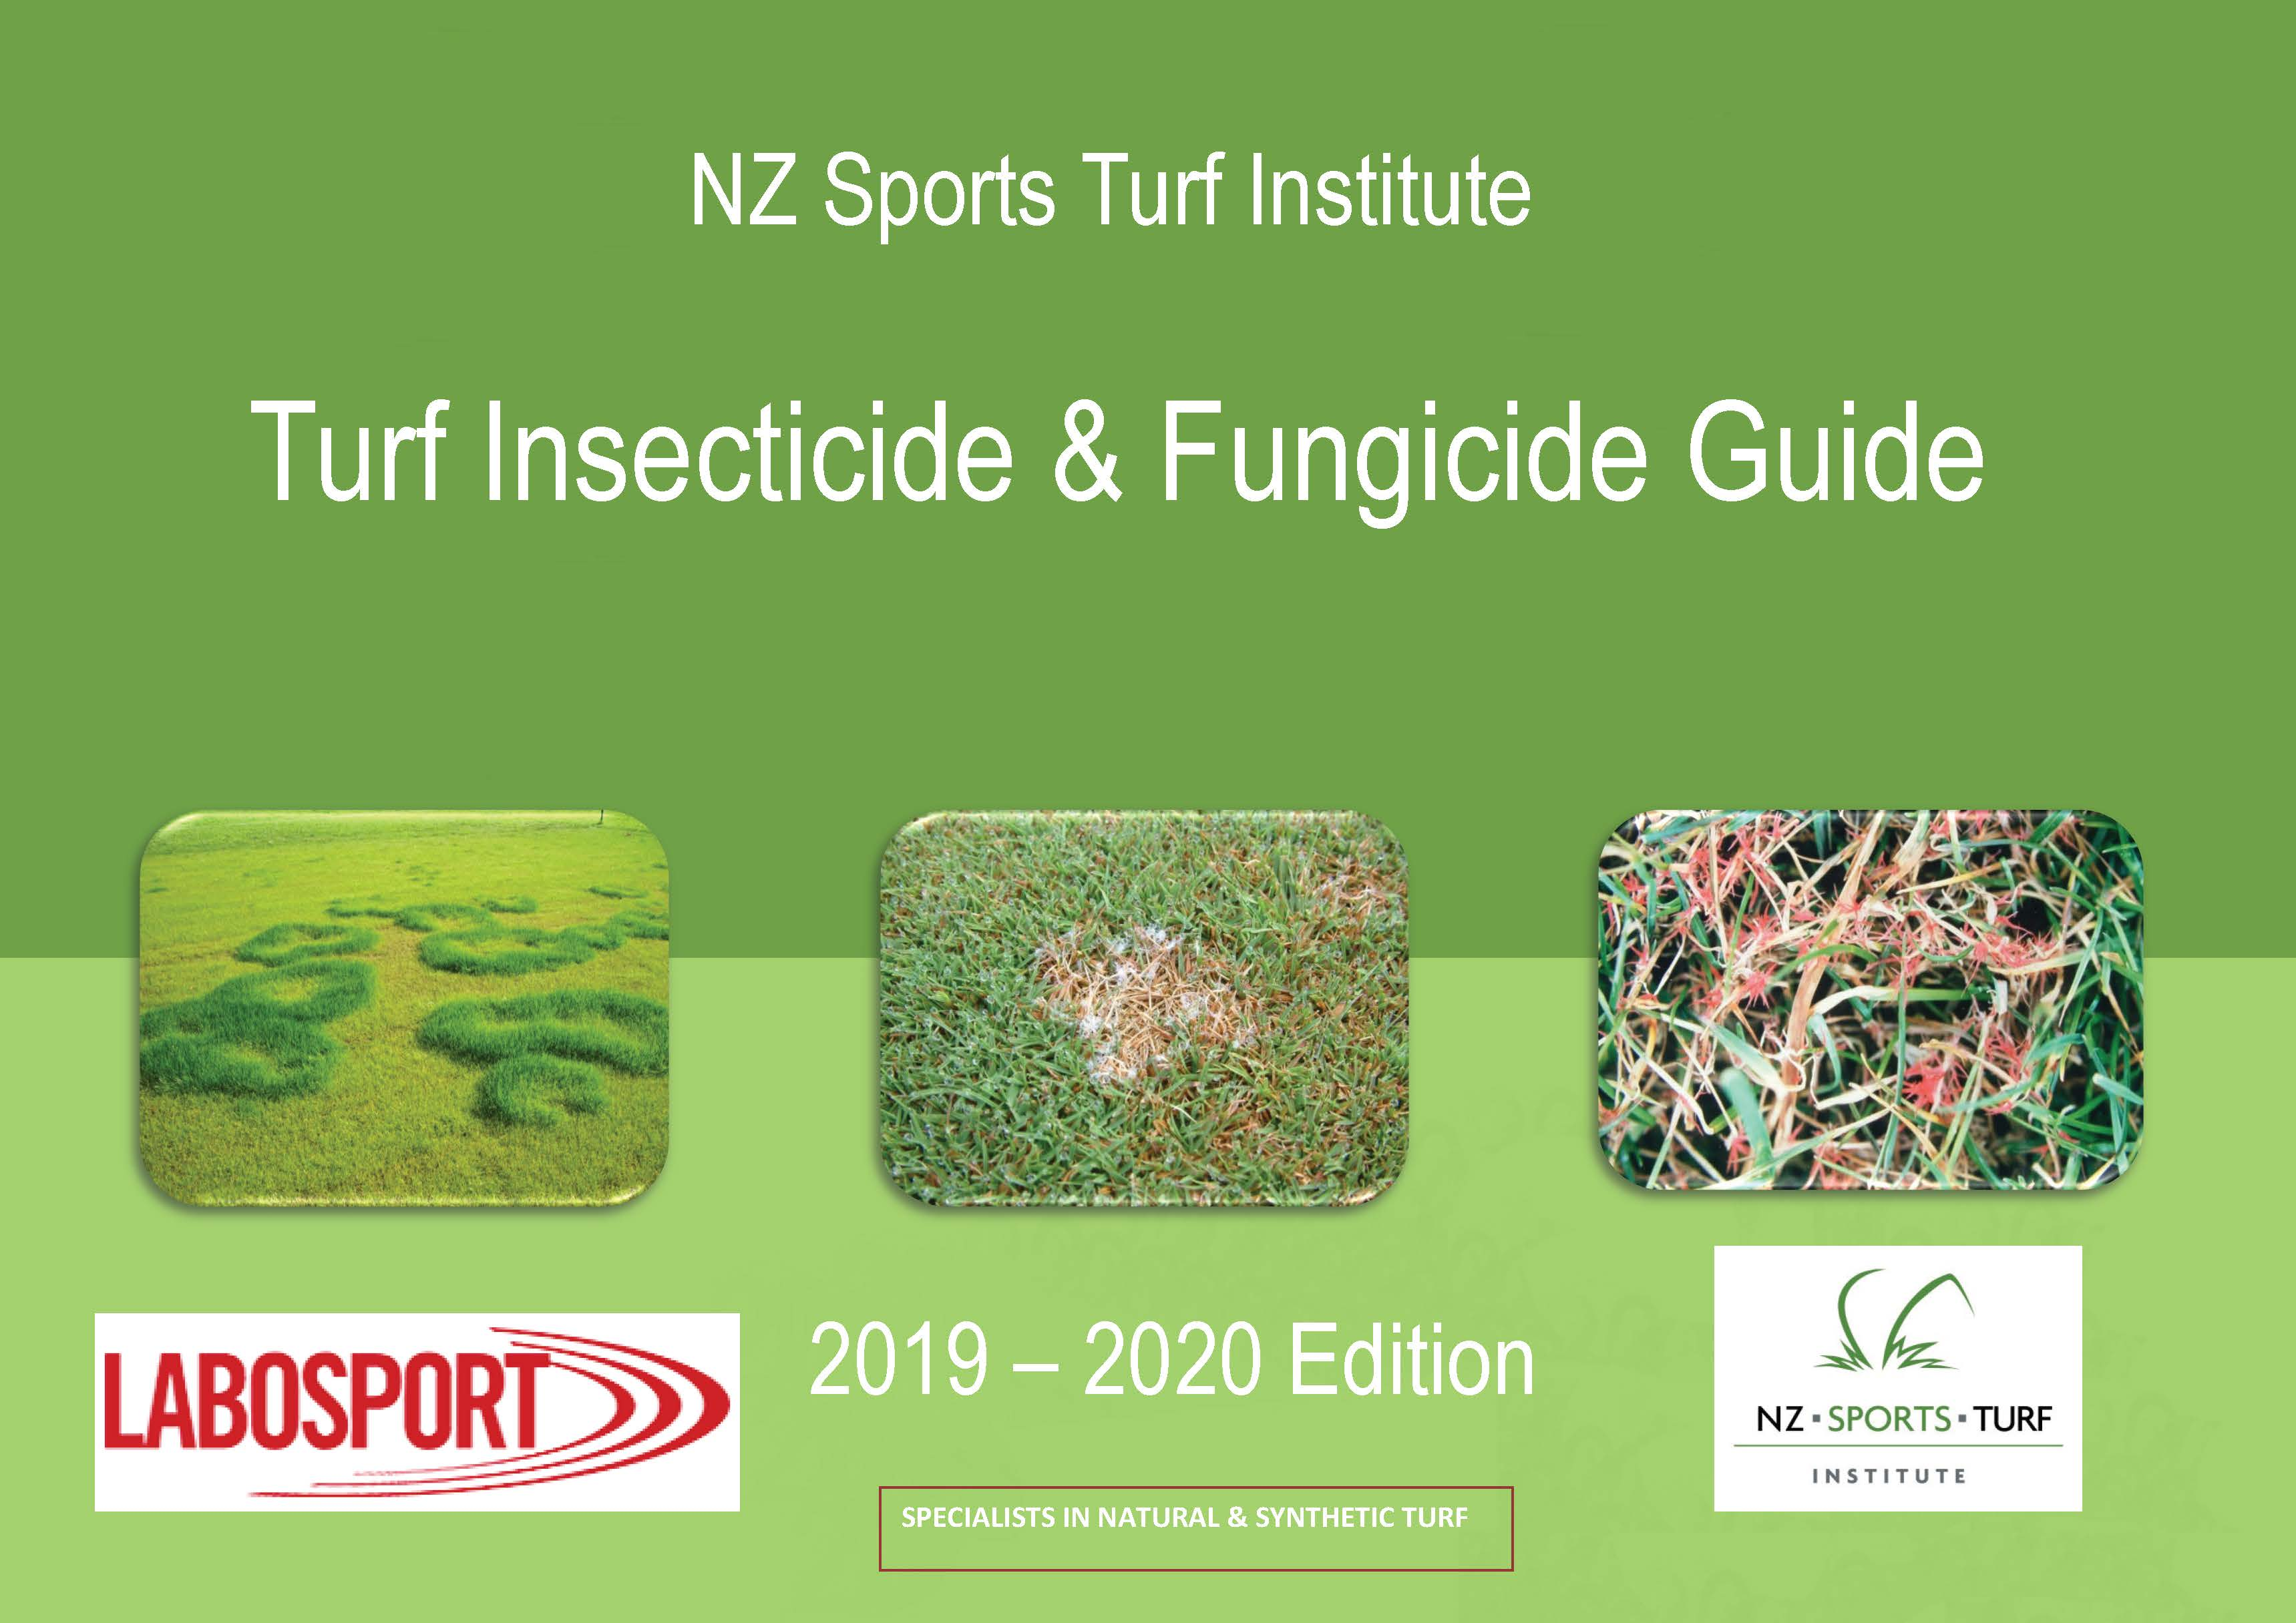 NZSTI Sports Turf Fungicide and Insecticide Guide